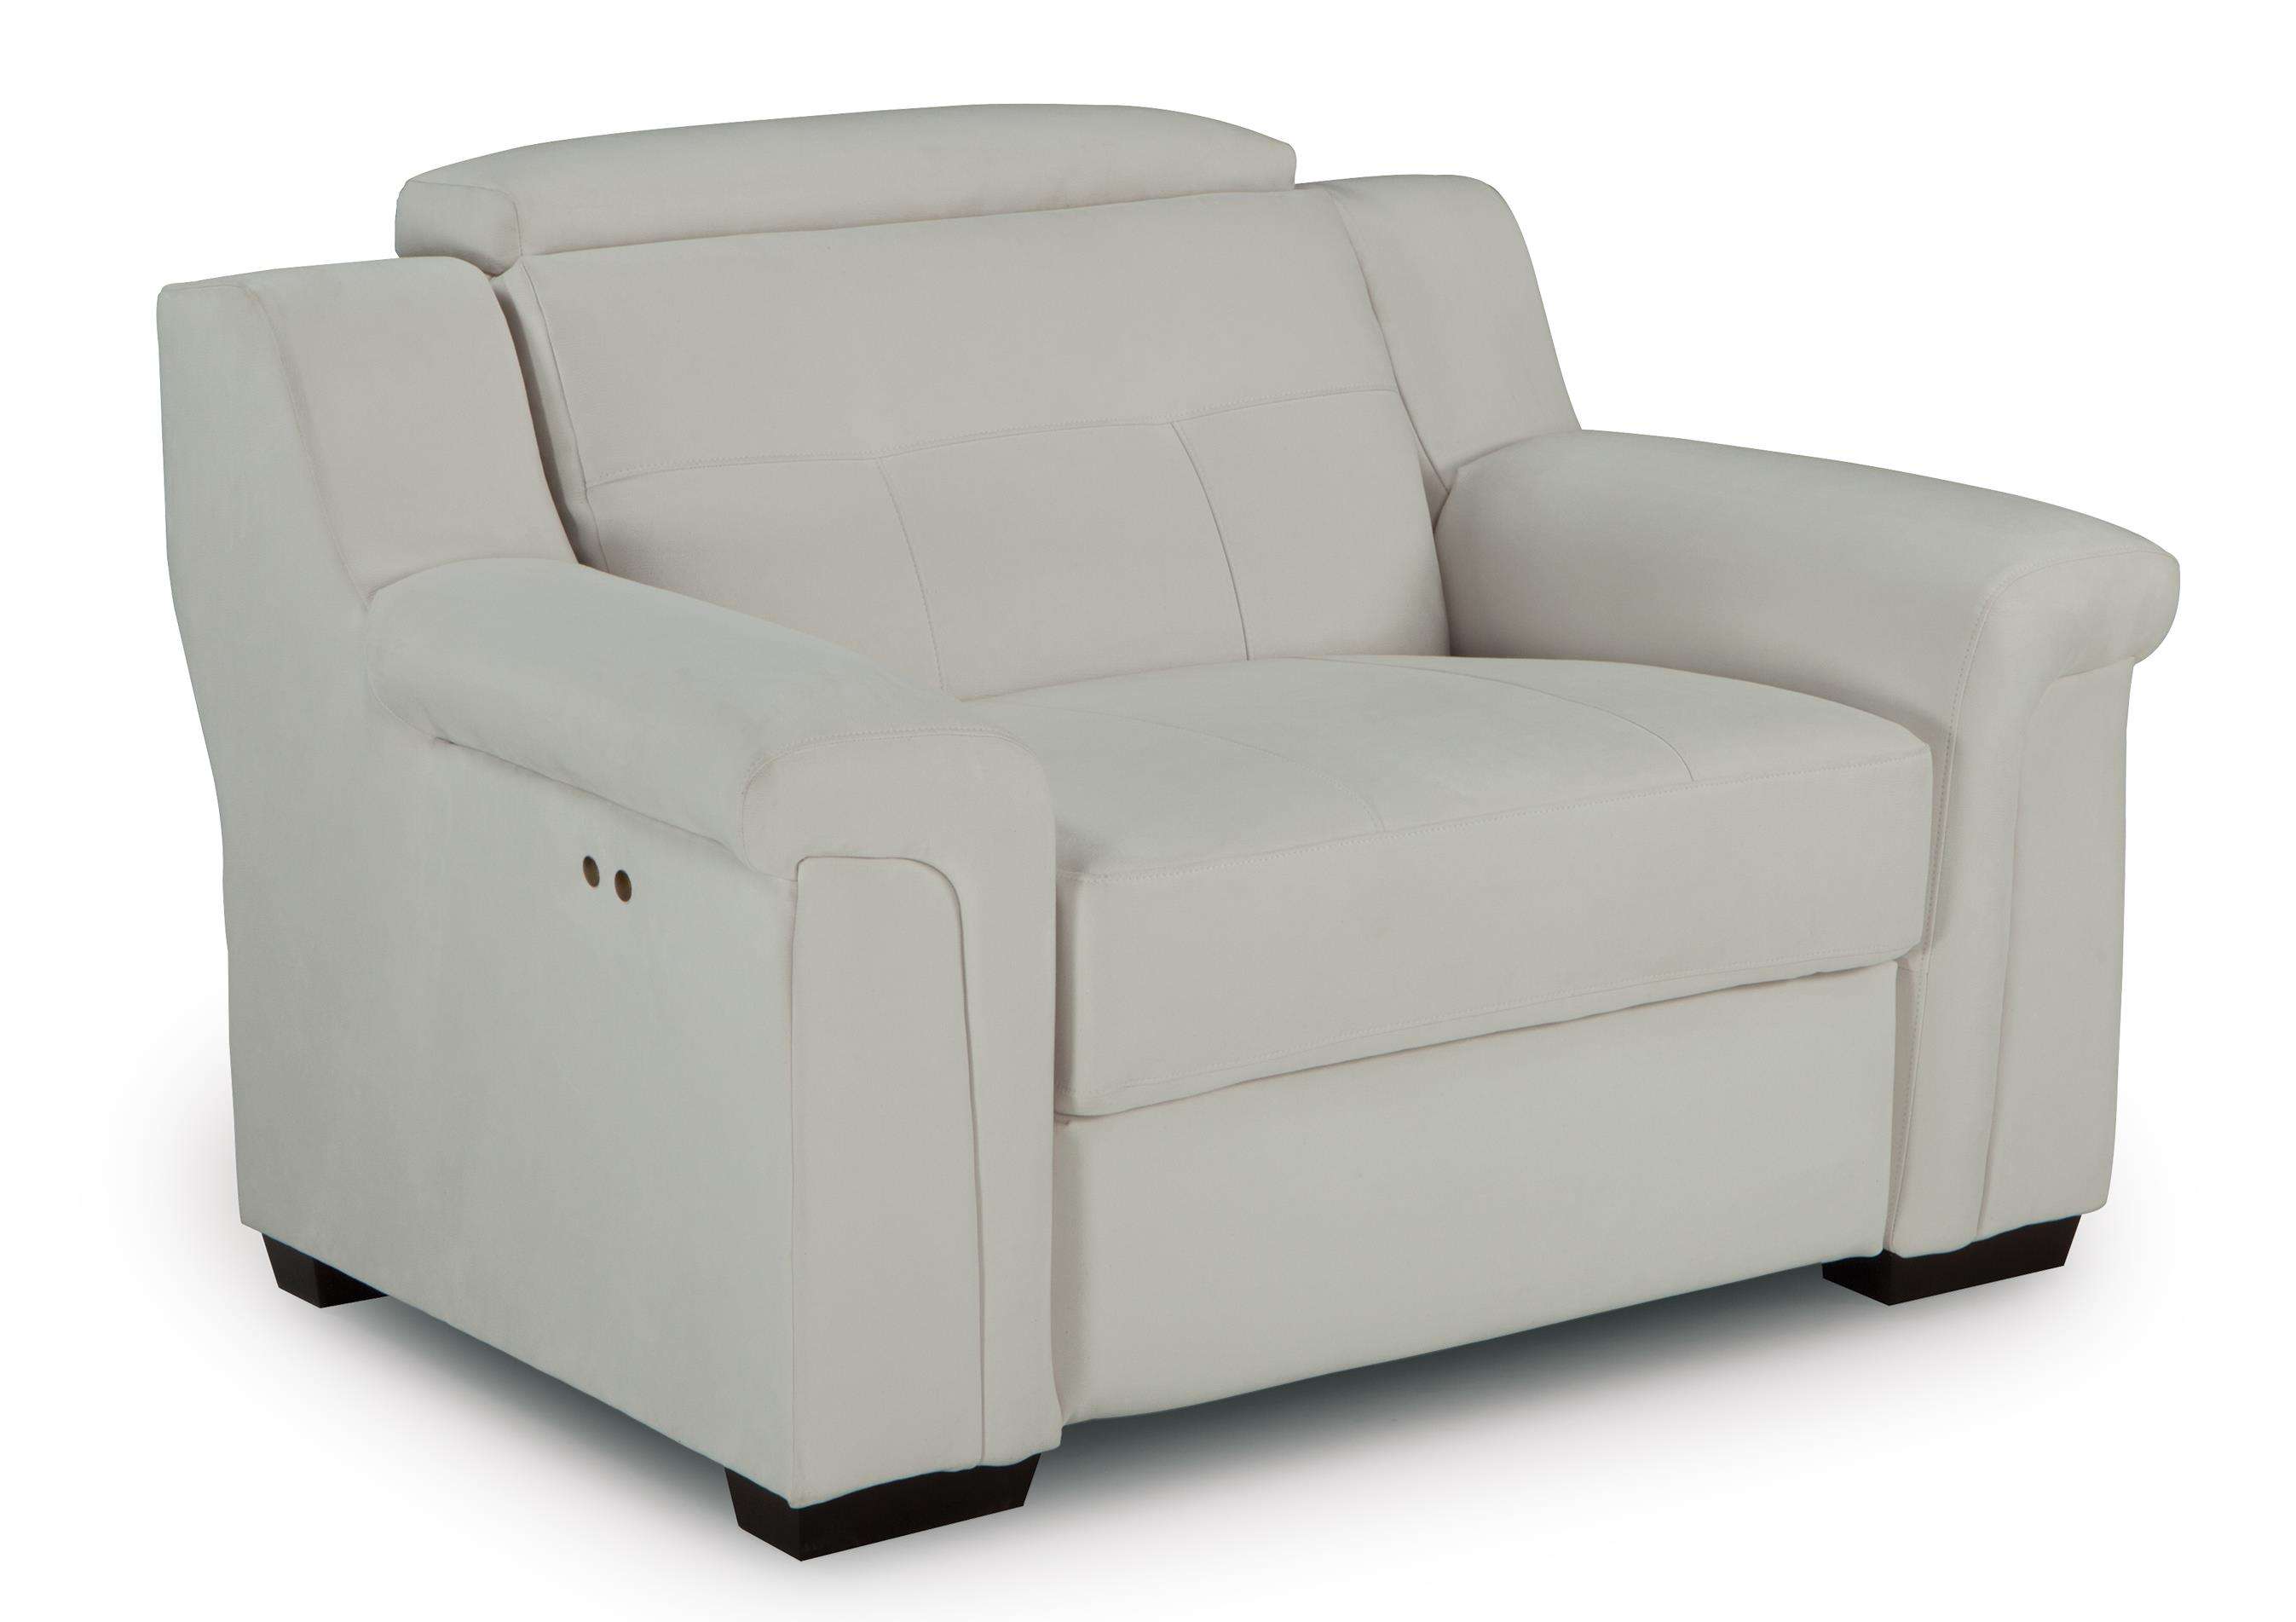 Best Home Furnishings Everette Power High Leg Recliner - Item Number: R400UZ2-26657U